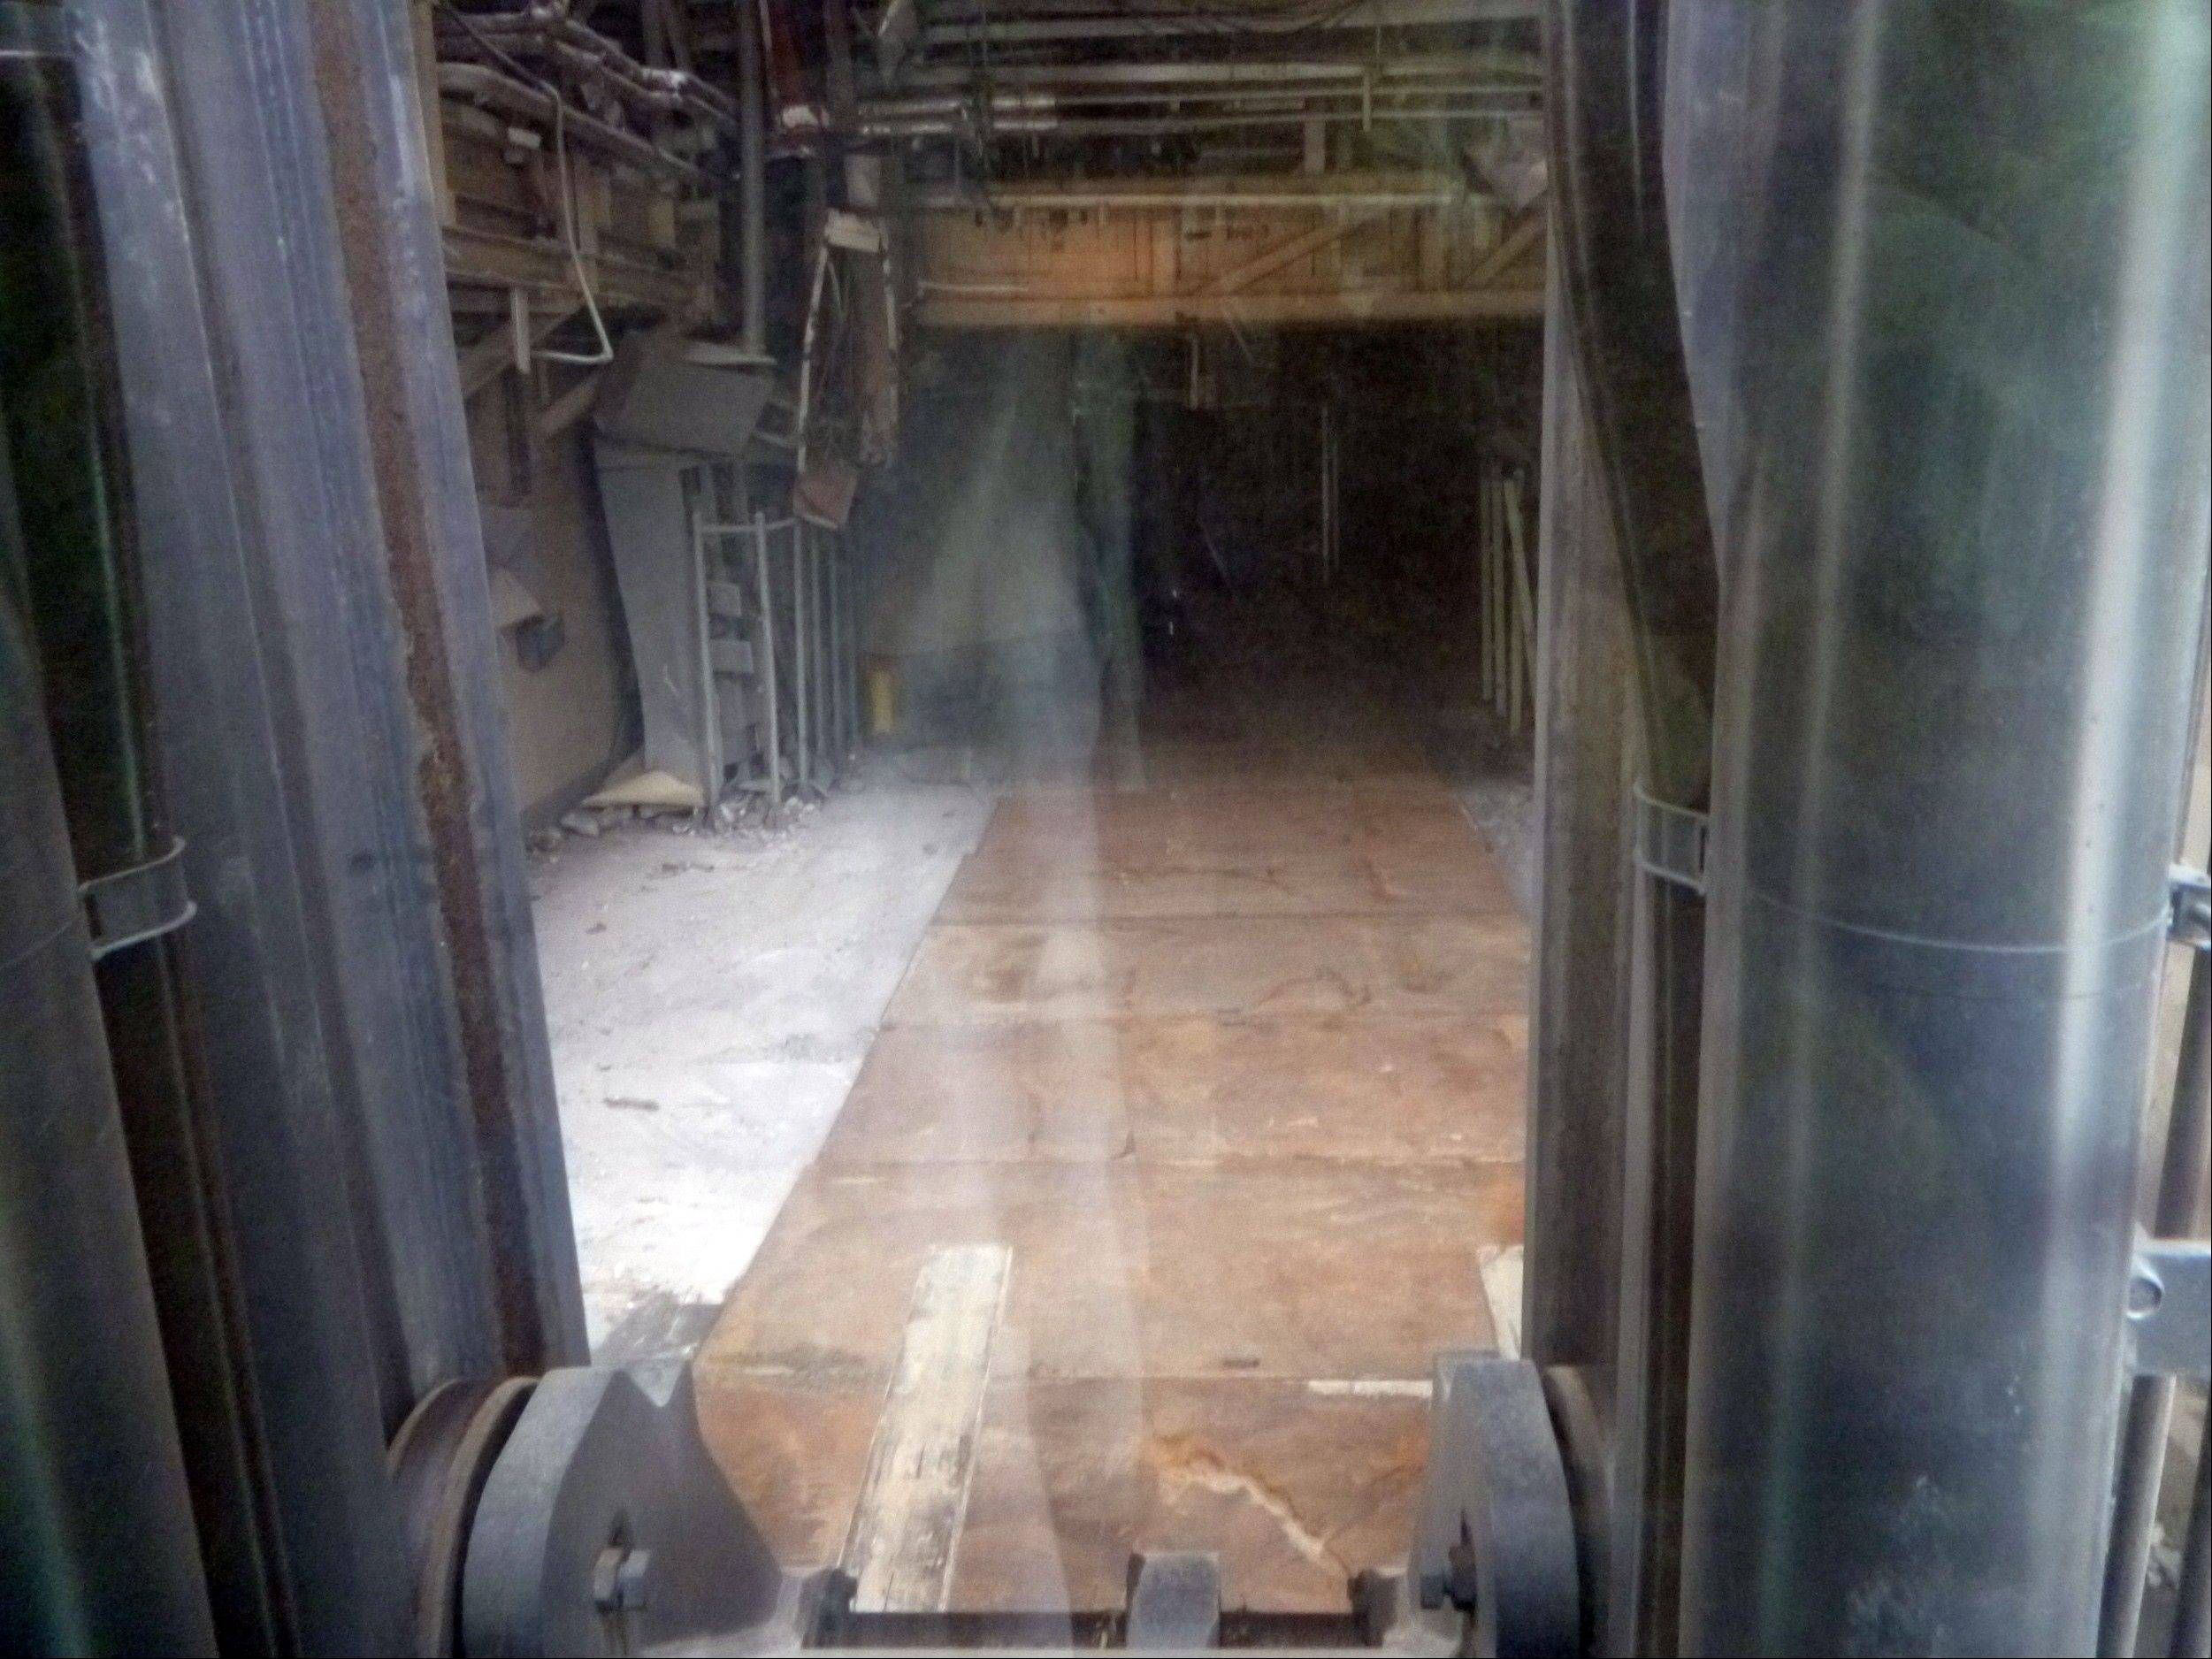 This July 3, 2011, photo released by Tokyo Electric Power Co. (TEPCO), taken through a window of a fork lift, shows iron sheets which protect workers from radiation on the ground floor of the Unit 3 reactor building at the tsunami-crippled Fukushima Dai-ichi nuclear power plant in Okuma town, Fukushima Prefecture, northeastern Japan. The operator of a Japanese nuclear plant that went into a tsunami-triggered meltdown knew the risks from highly radioactive water at the site but sent in crews without adequate protection or warnings, a worker said in a legal complaint filed Tuesday, Oct. 31, 2012. Asked about the allegations, a TEPCO spokesman said the plant was aware of water leaks elsewhere but couldn�t anticipate the water problem in Unit 3�s basement.